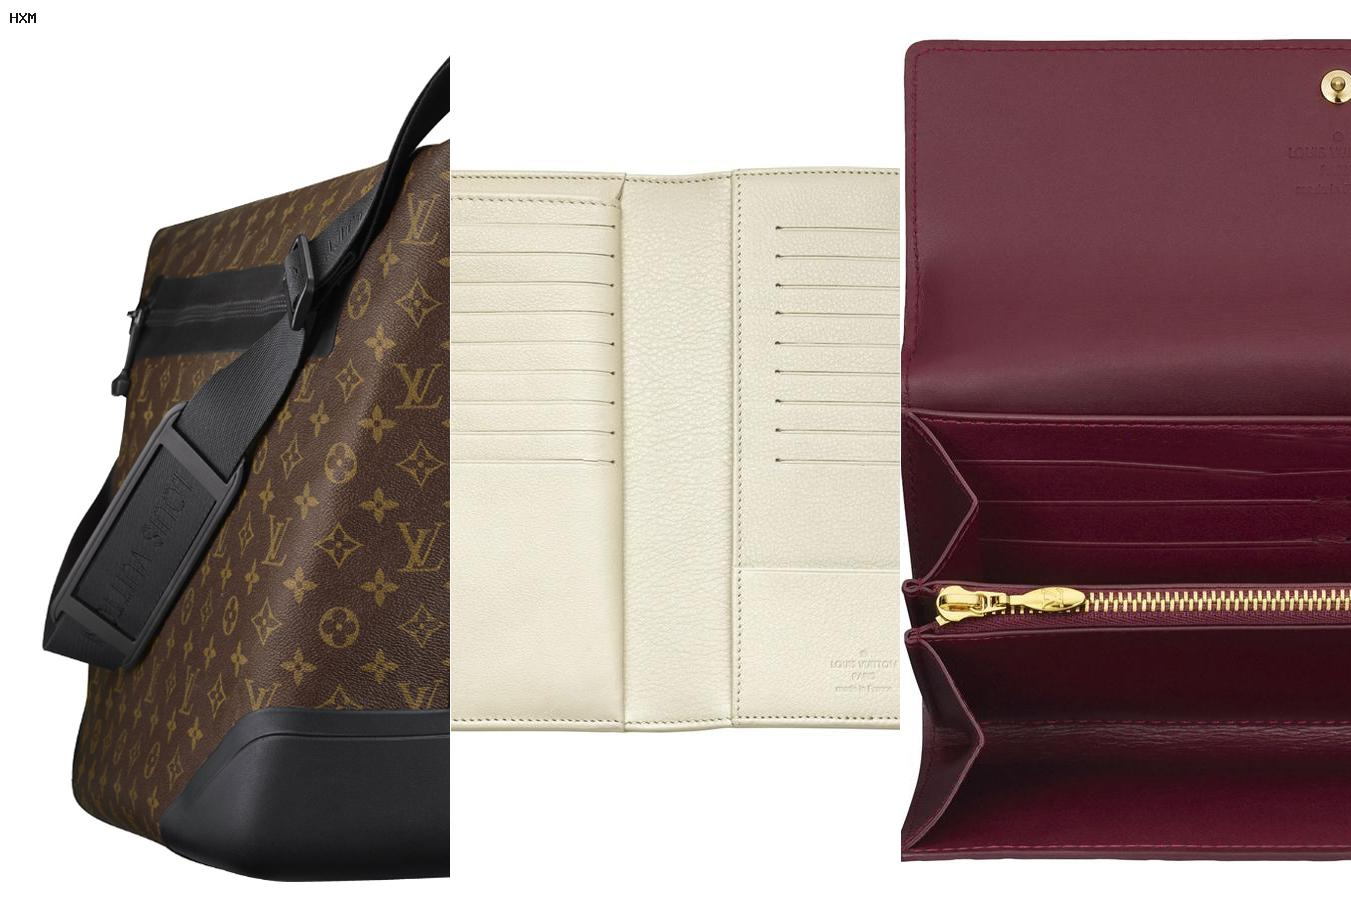 bolsas louis vuitton clones